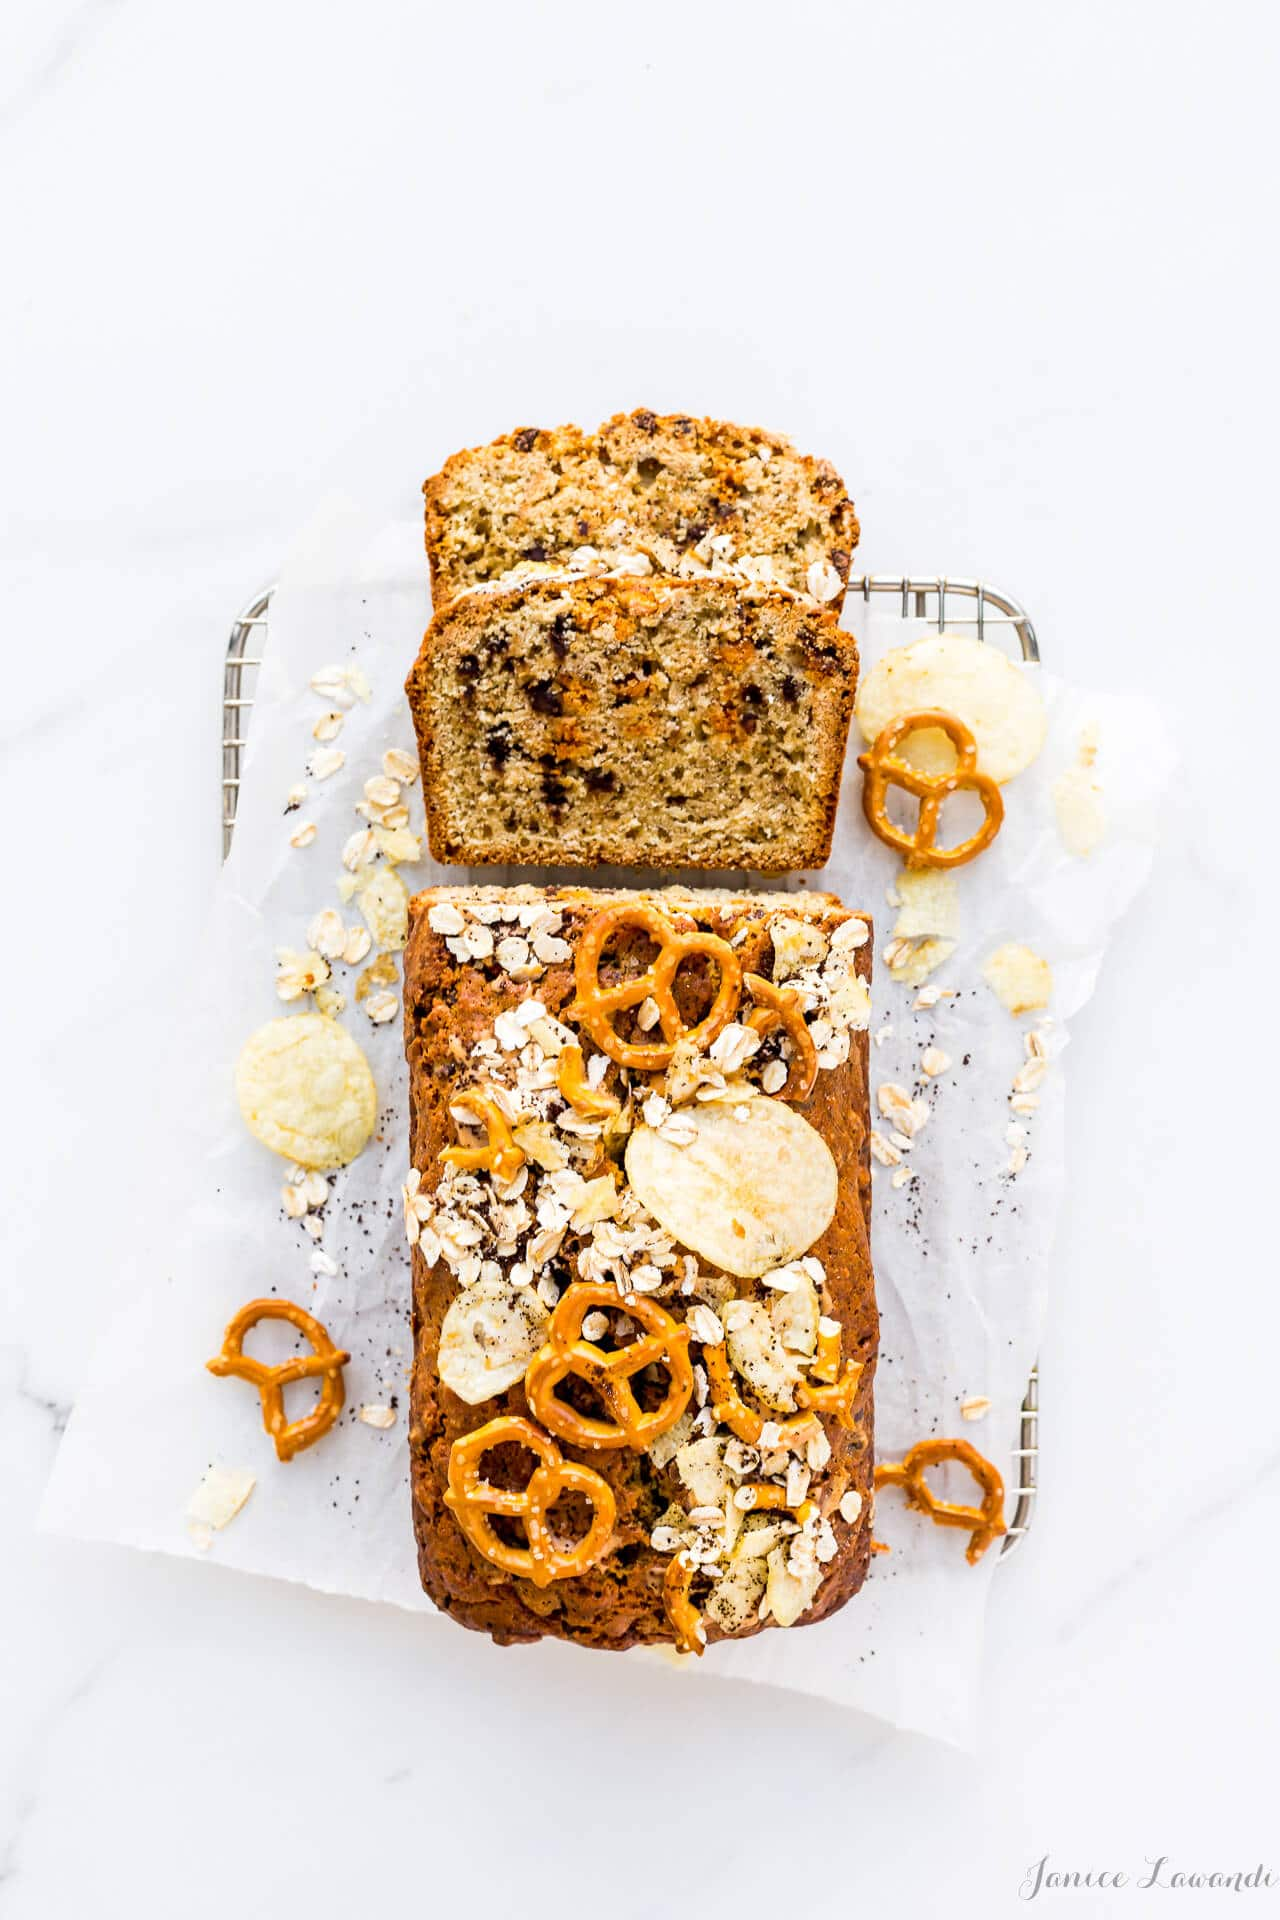 Sliced loaf cake of Christina Tosi's compost pound cake rectangular loaf cake with potato chips, pretzels, chocolate chips, butterscotch chips, oats, and coffee, on a small cooling rack on parchment paper